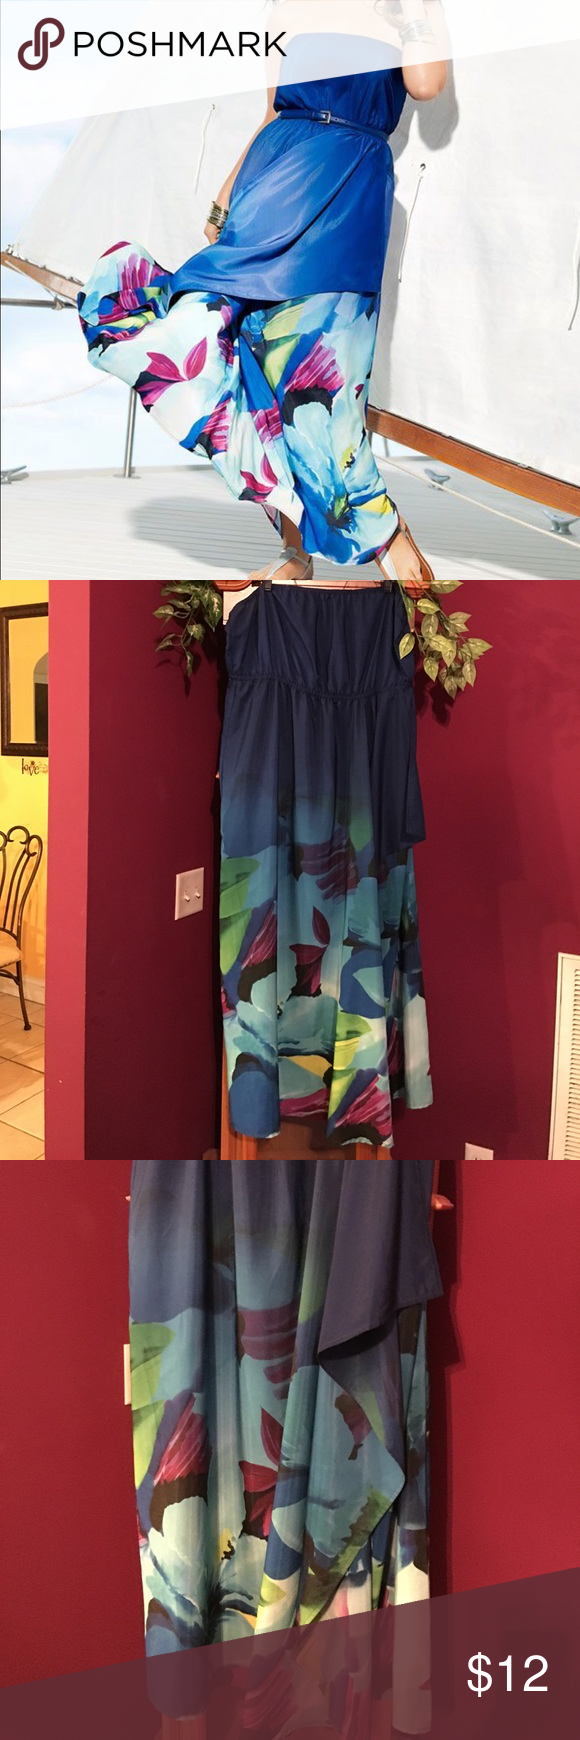 Lane Bryant blue floral layered sundress Preowned- Great condition- Reposh- size 18/20 Lane Bryant Dresses Maxi